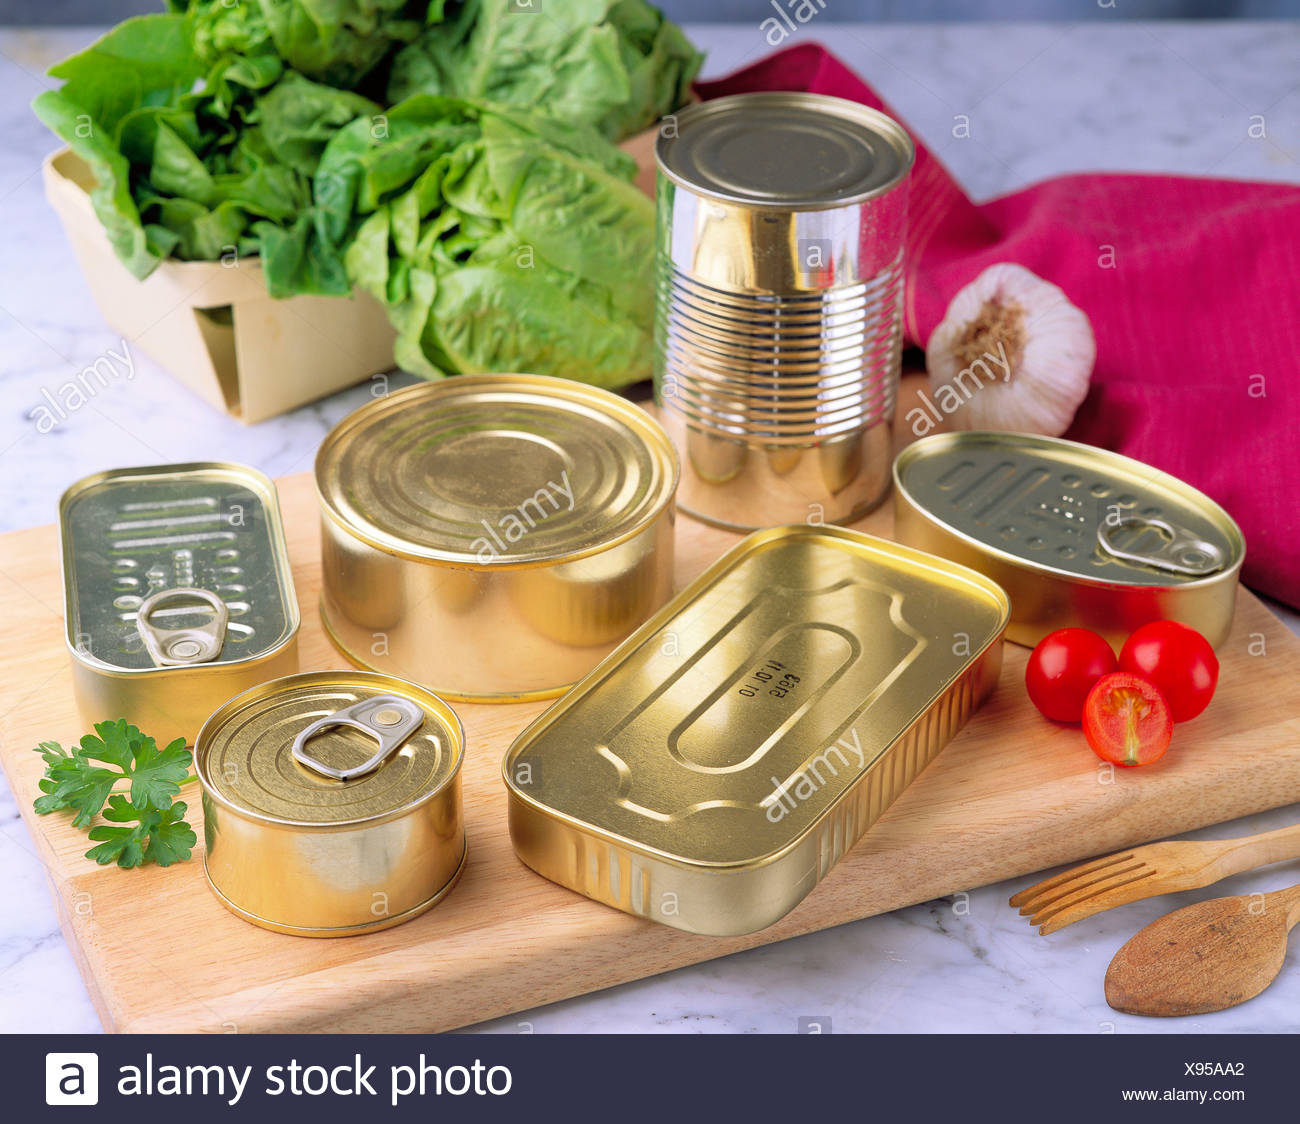 Preserved food - Stock Image